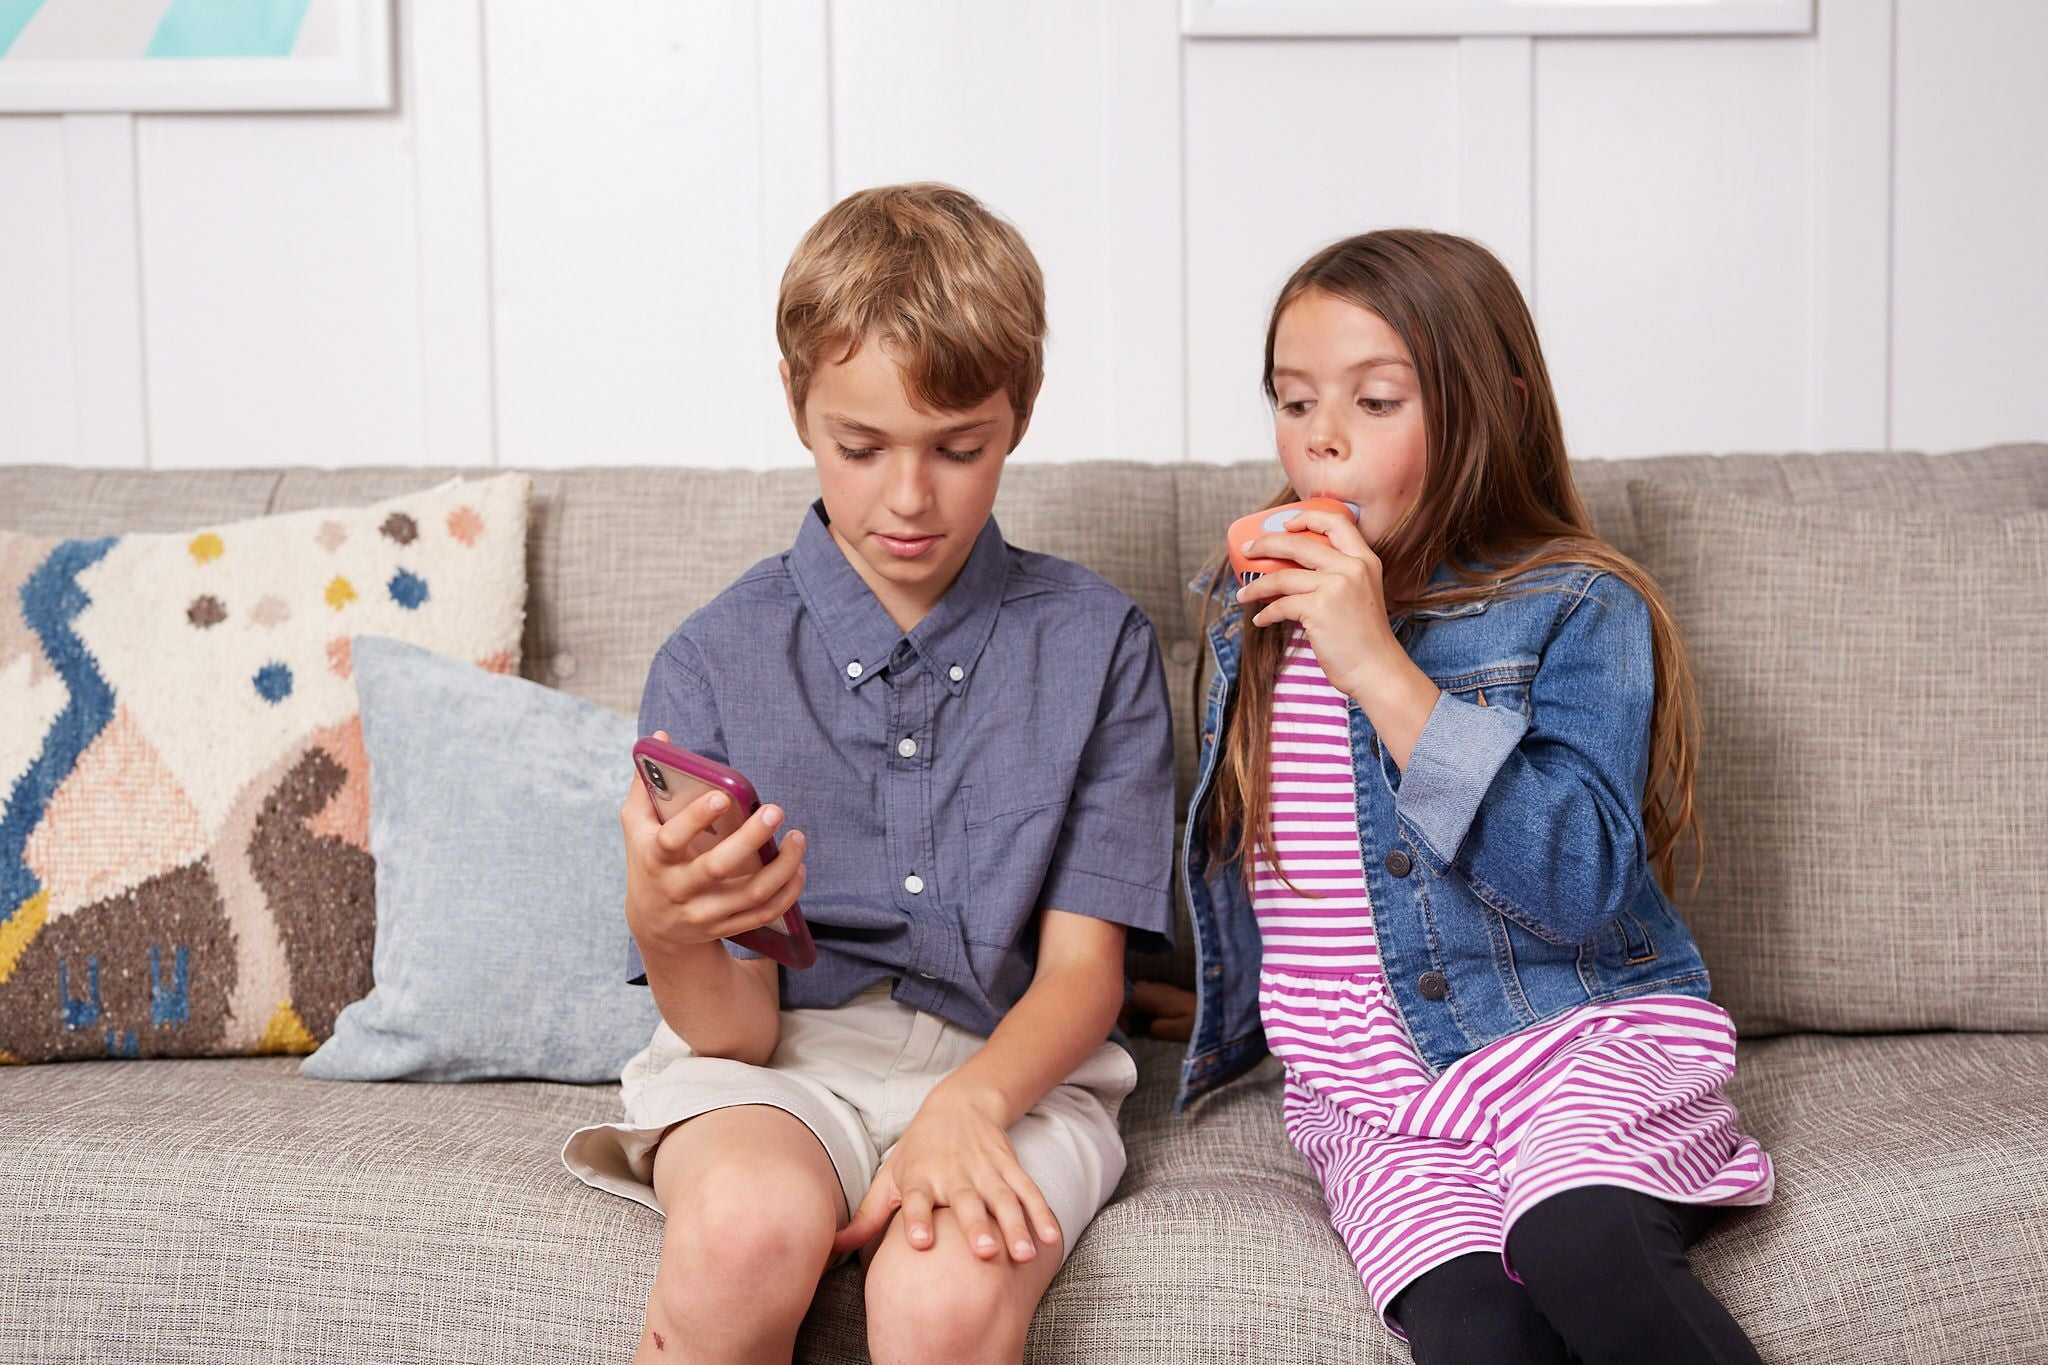 siblings using an Aluna spirometer and playing a game